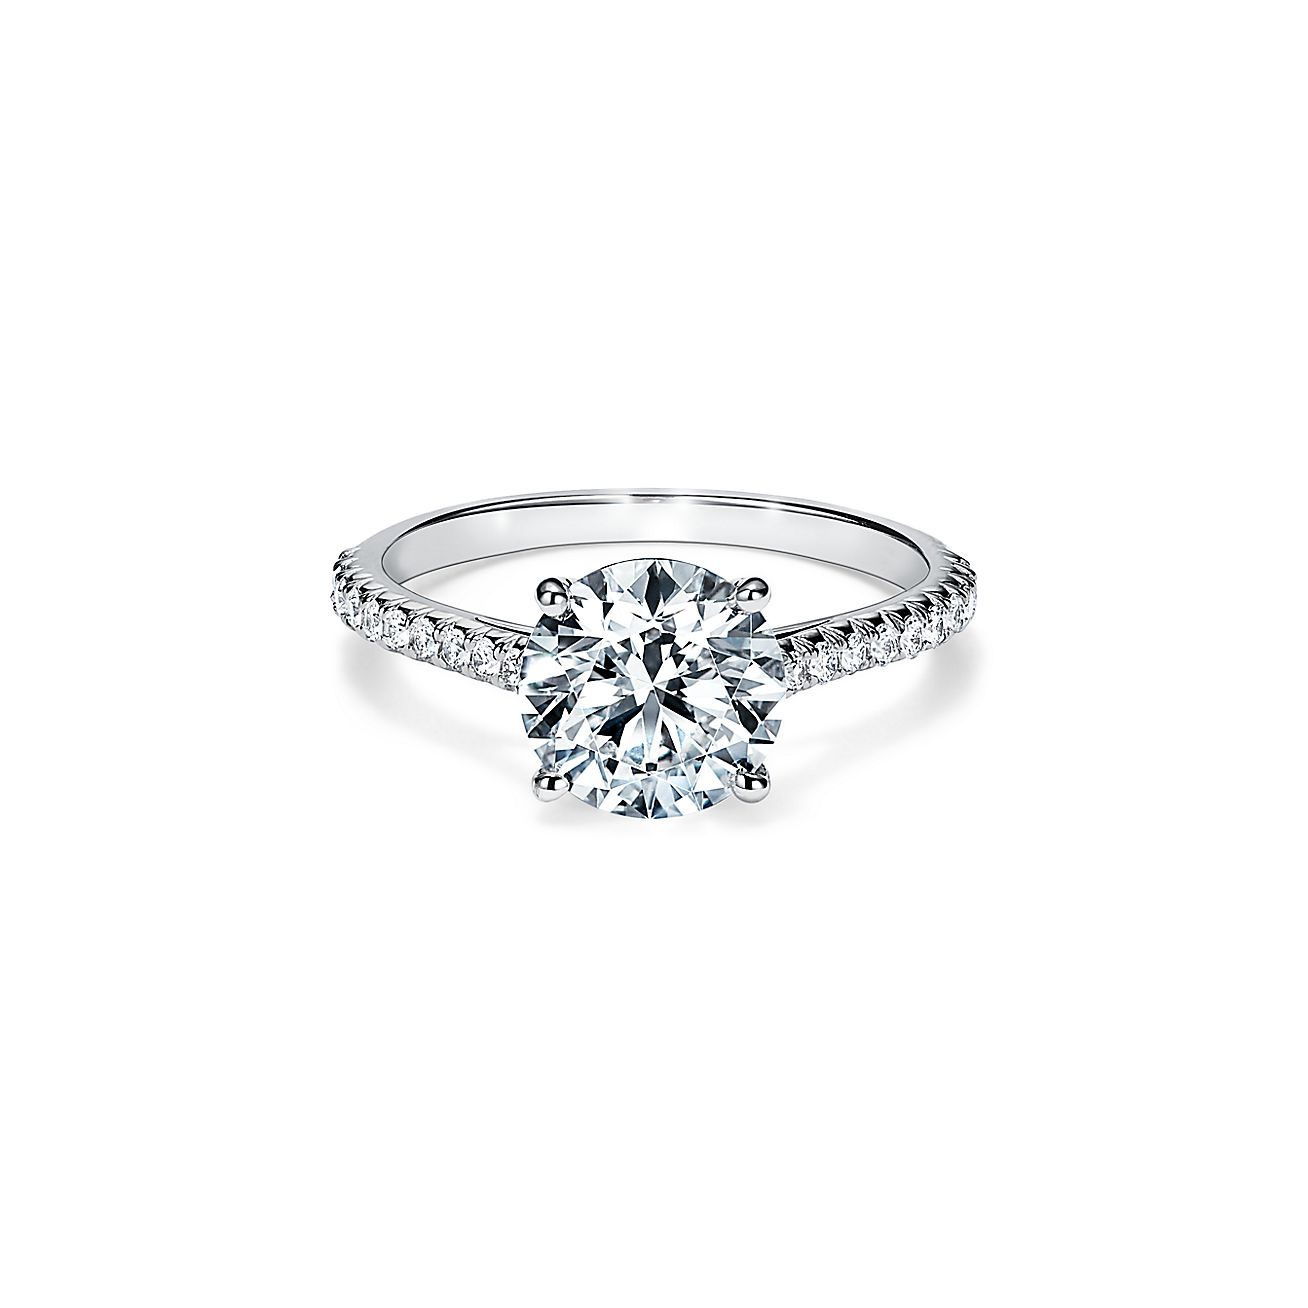 Tiffany Novo Round Brilliant Engagement Ring With A Pave